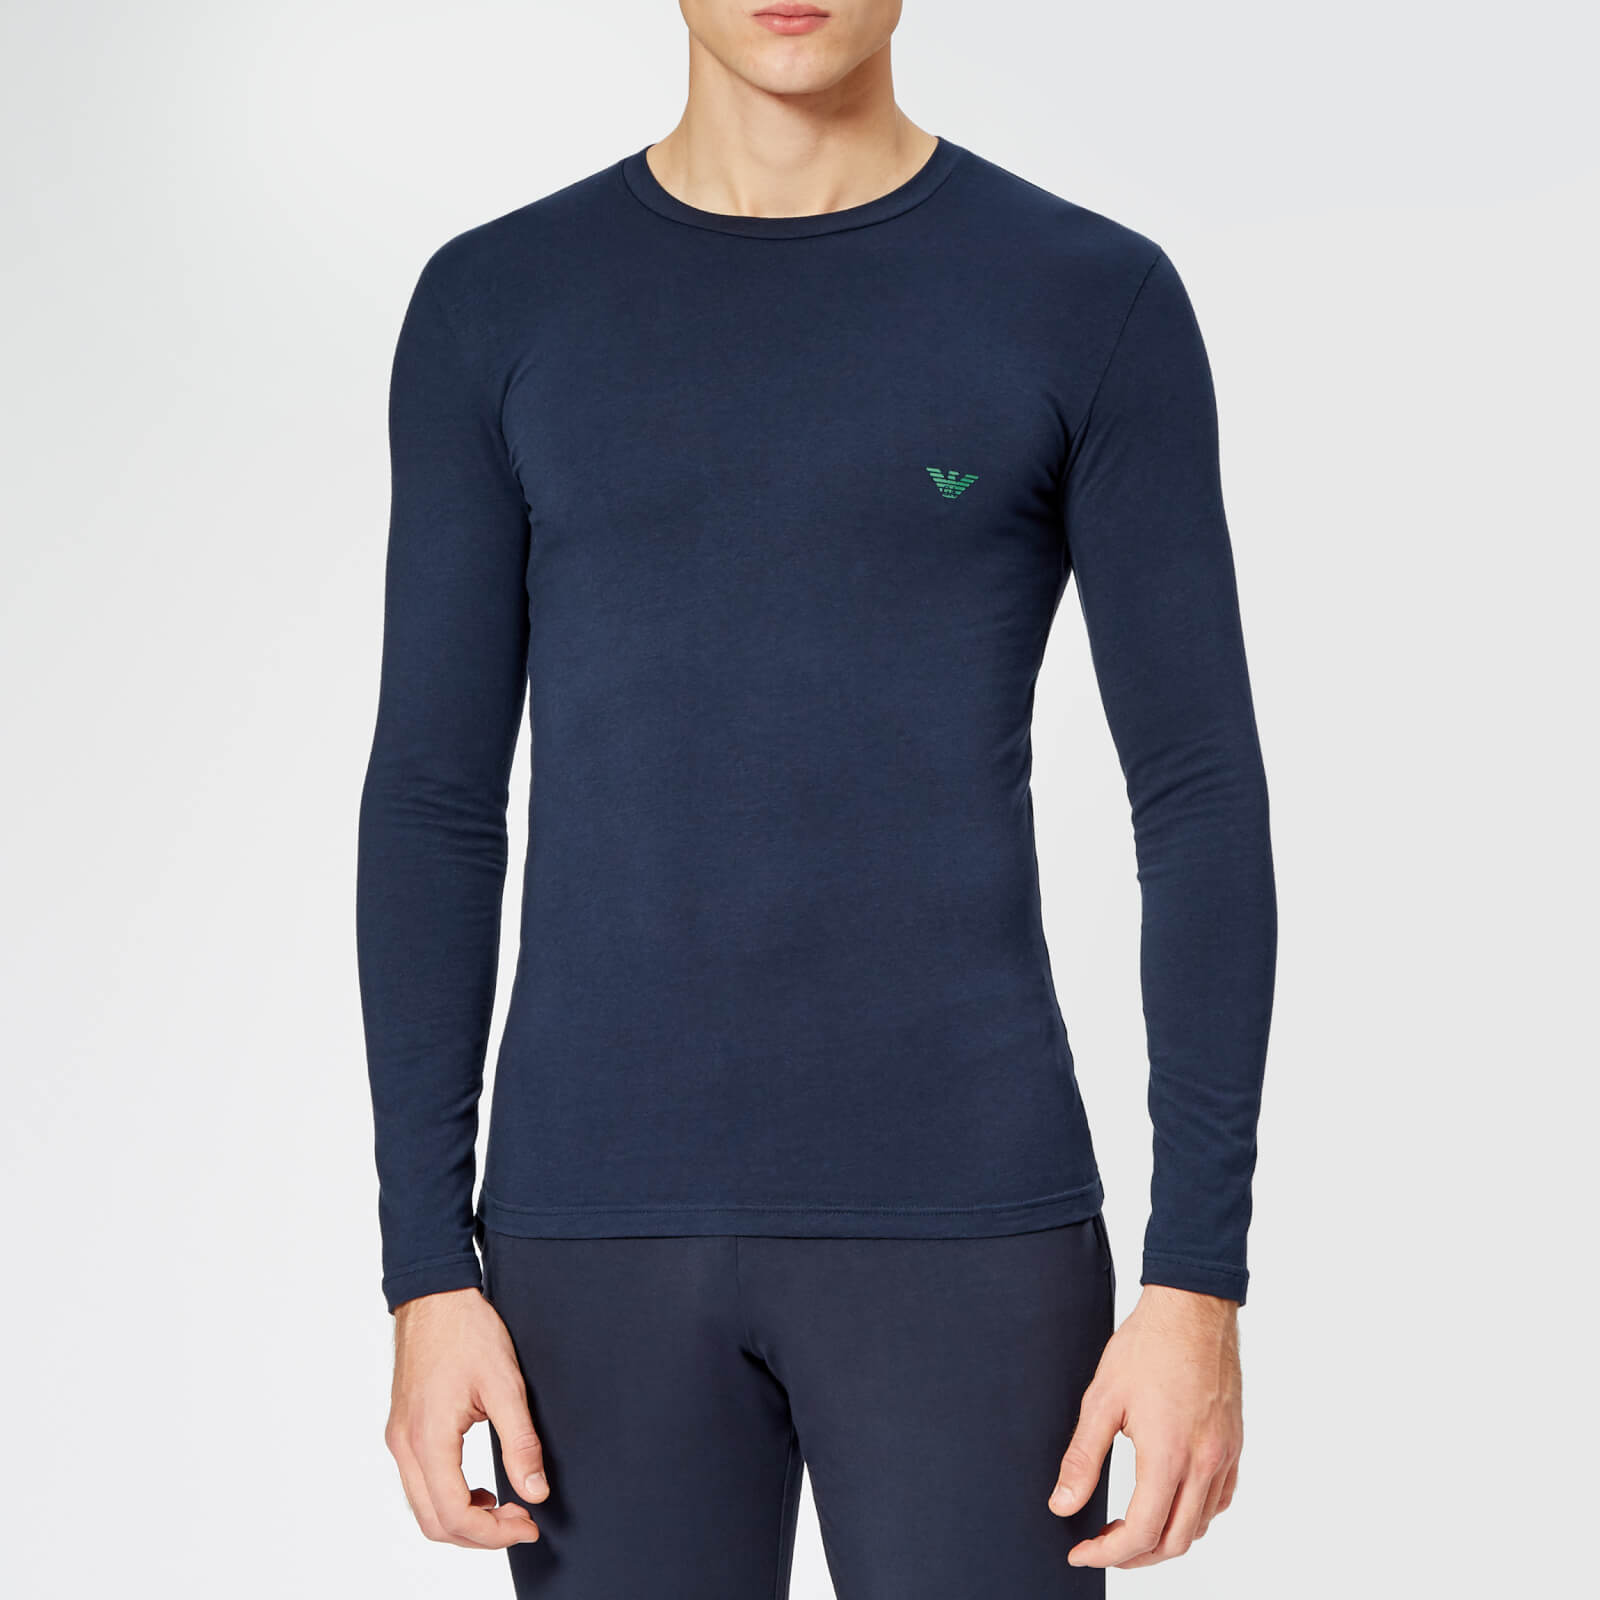 5f86a087 Emporio Armani Men's Long Sleeve T-Shirt - Blue - Free UK Delivery over £50